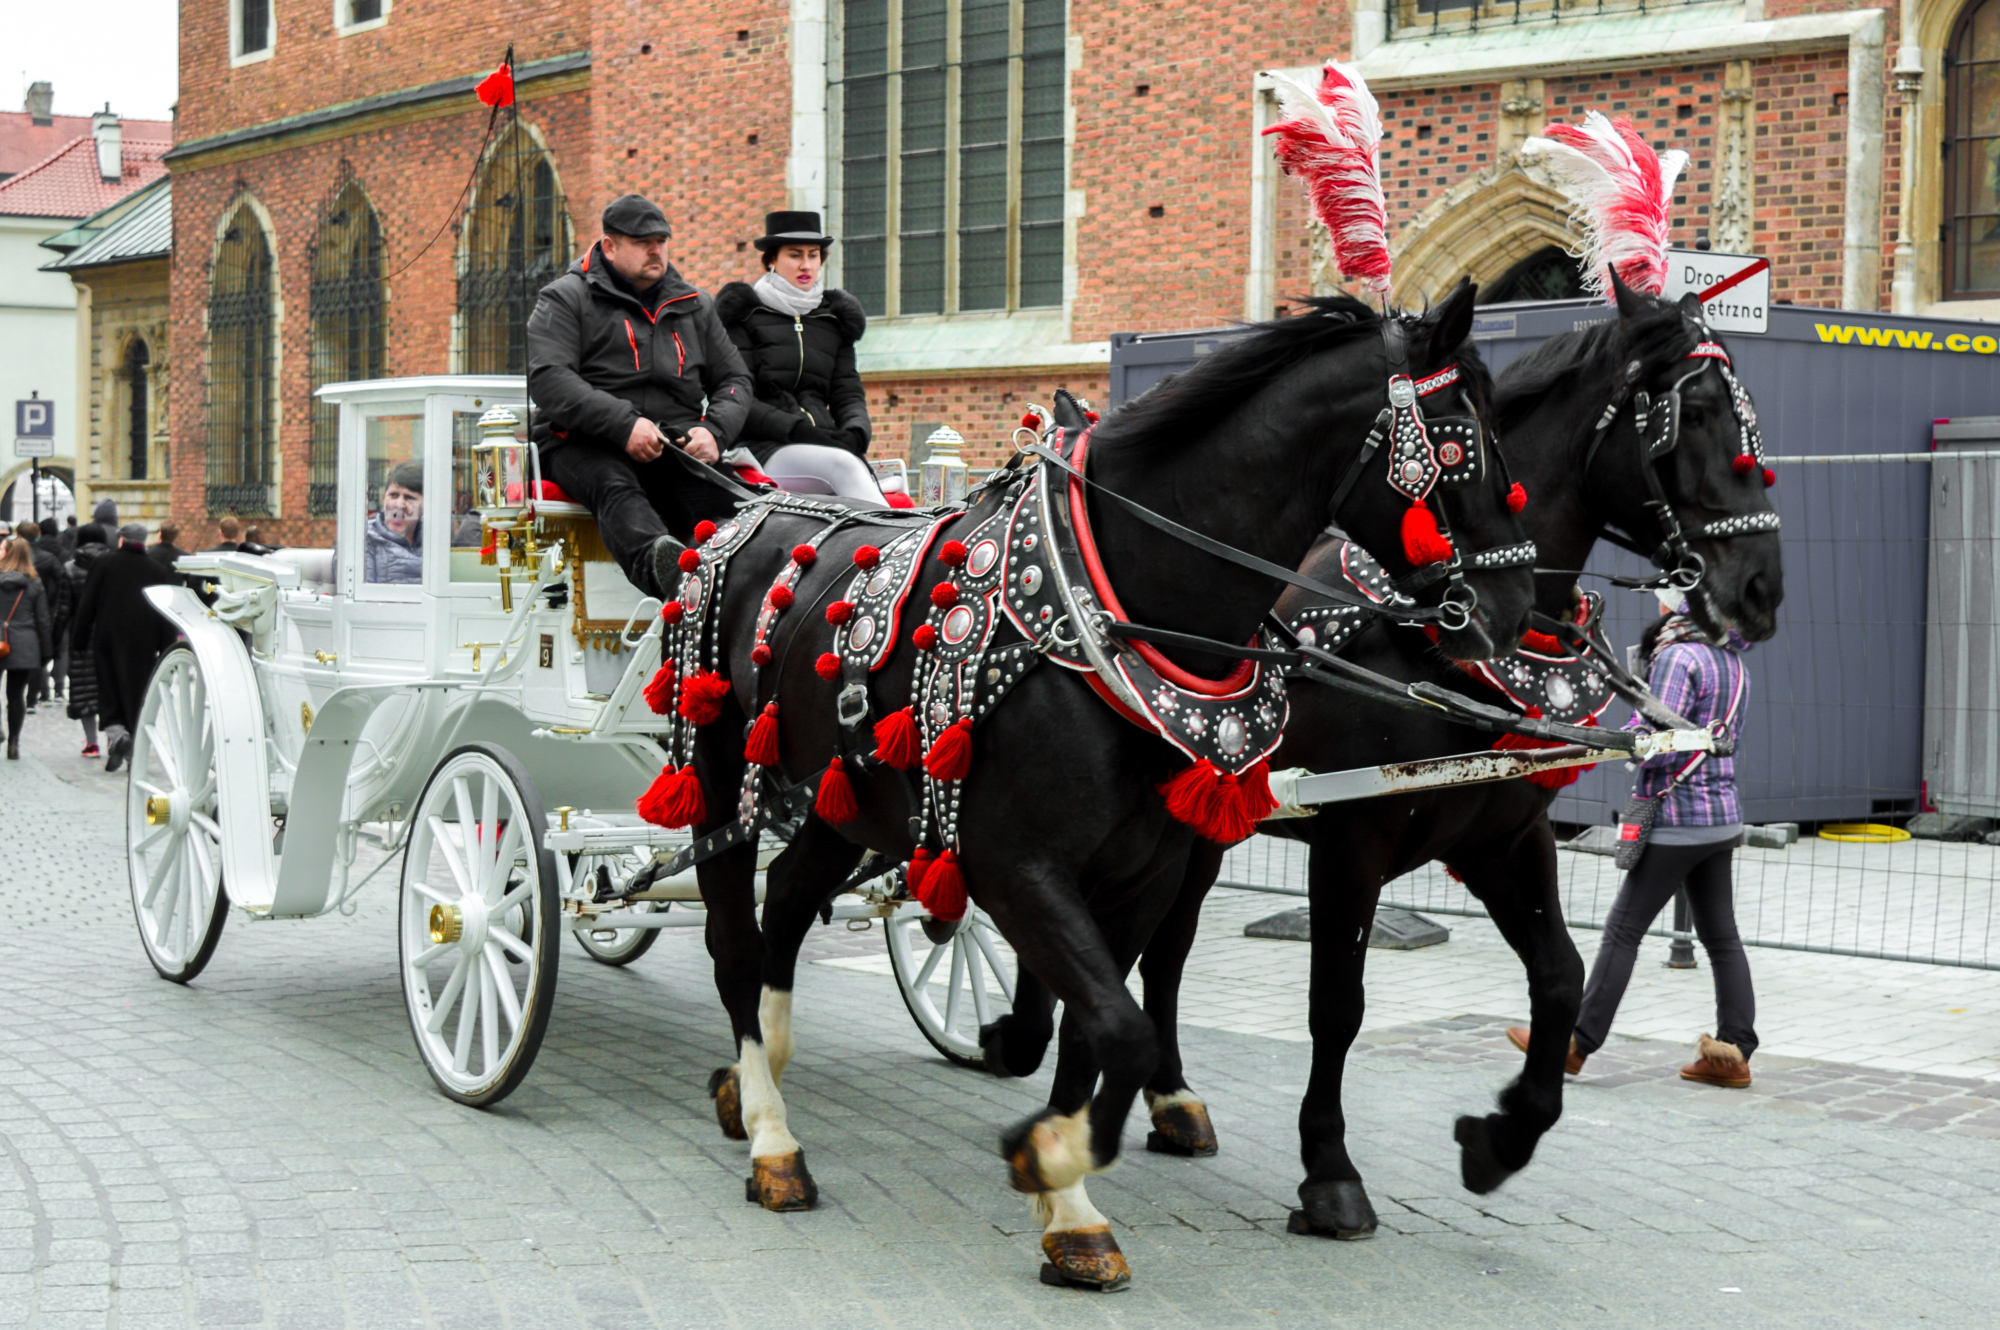 Horse and cart rides in Main Square, Krakow